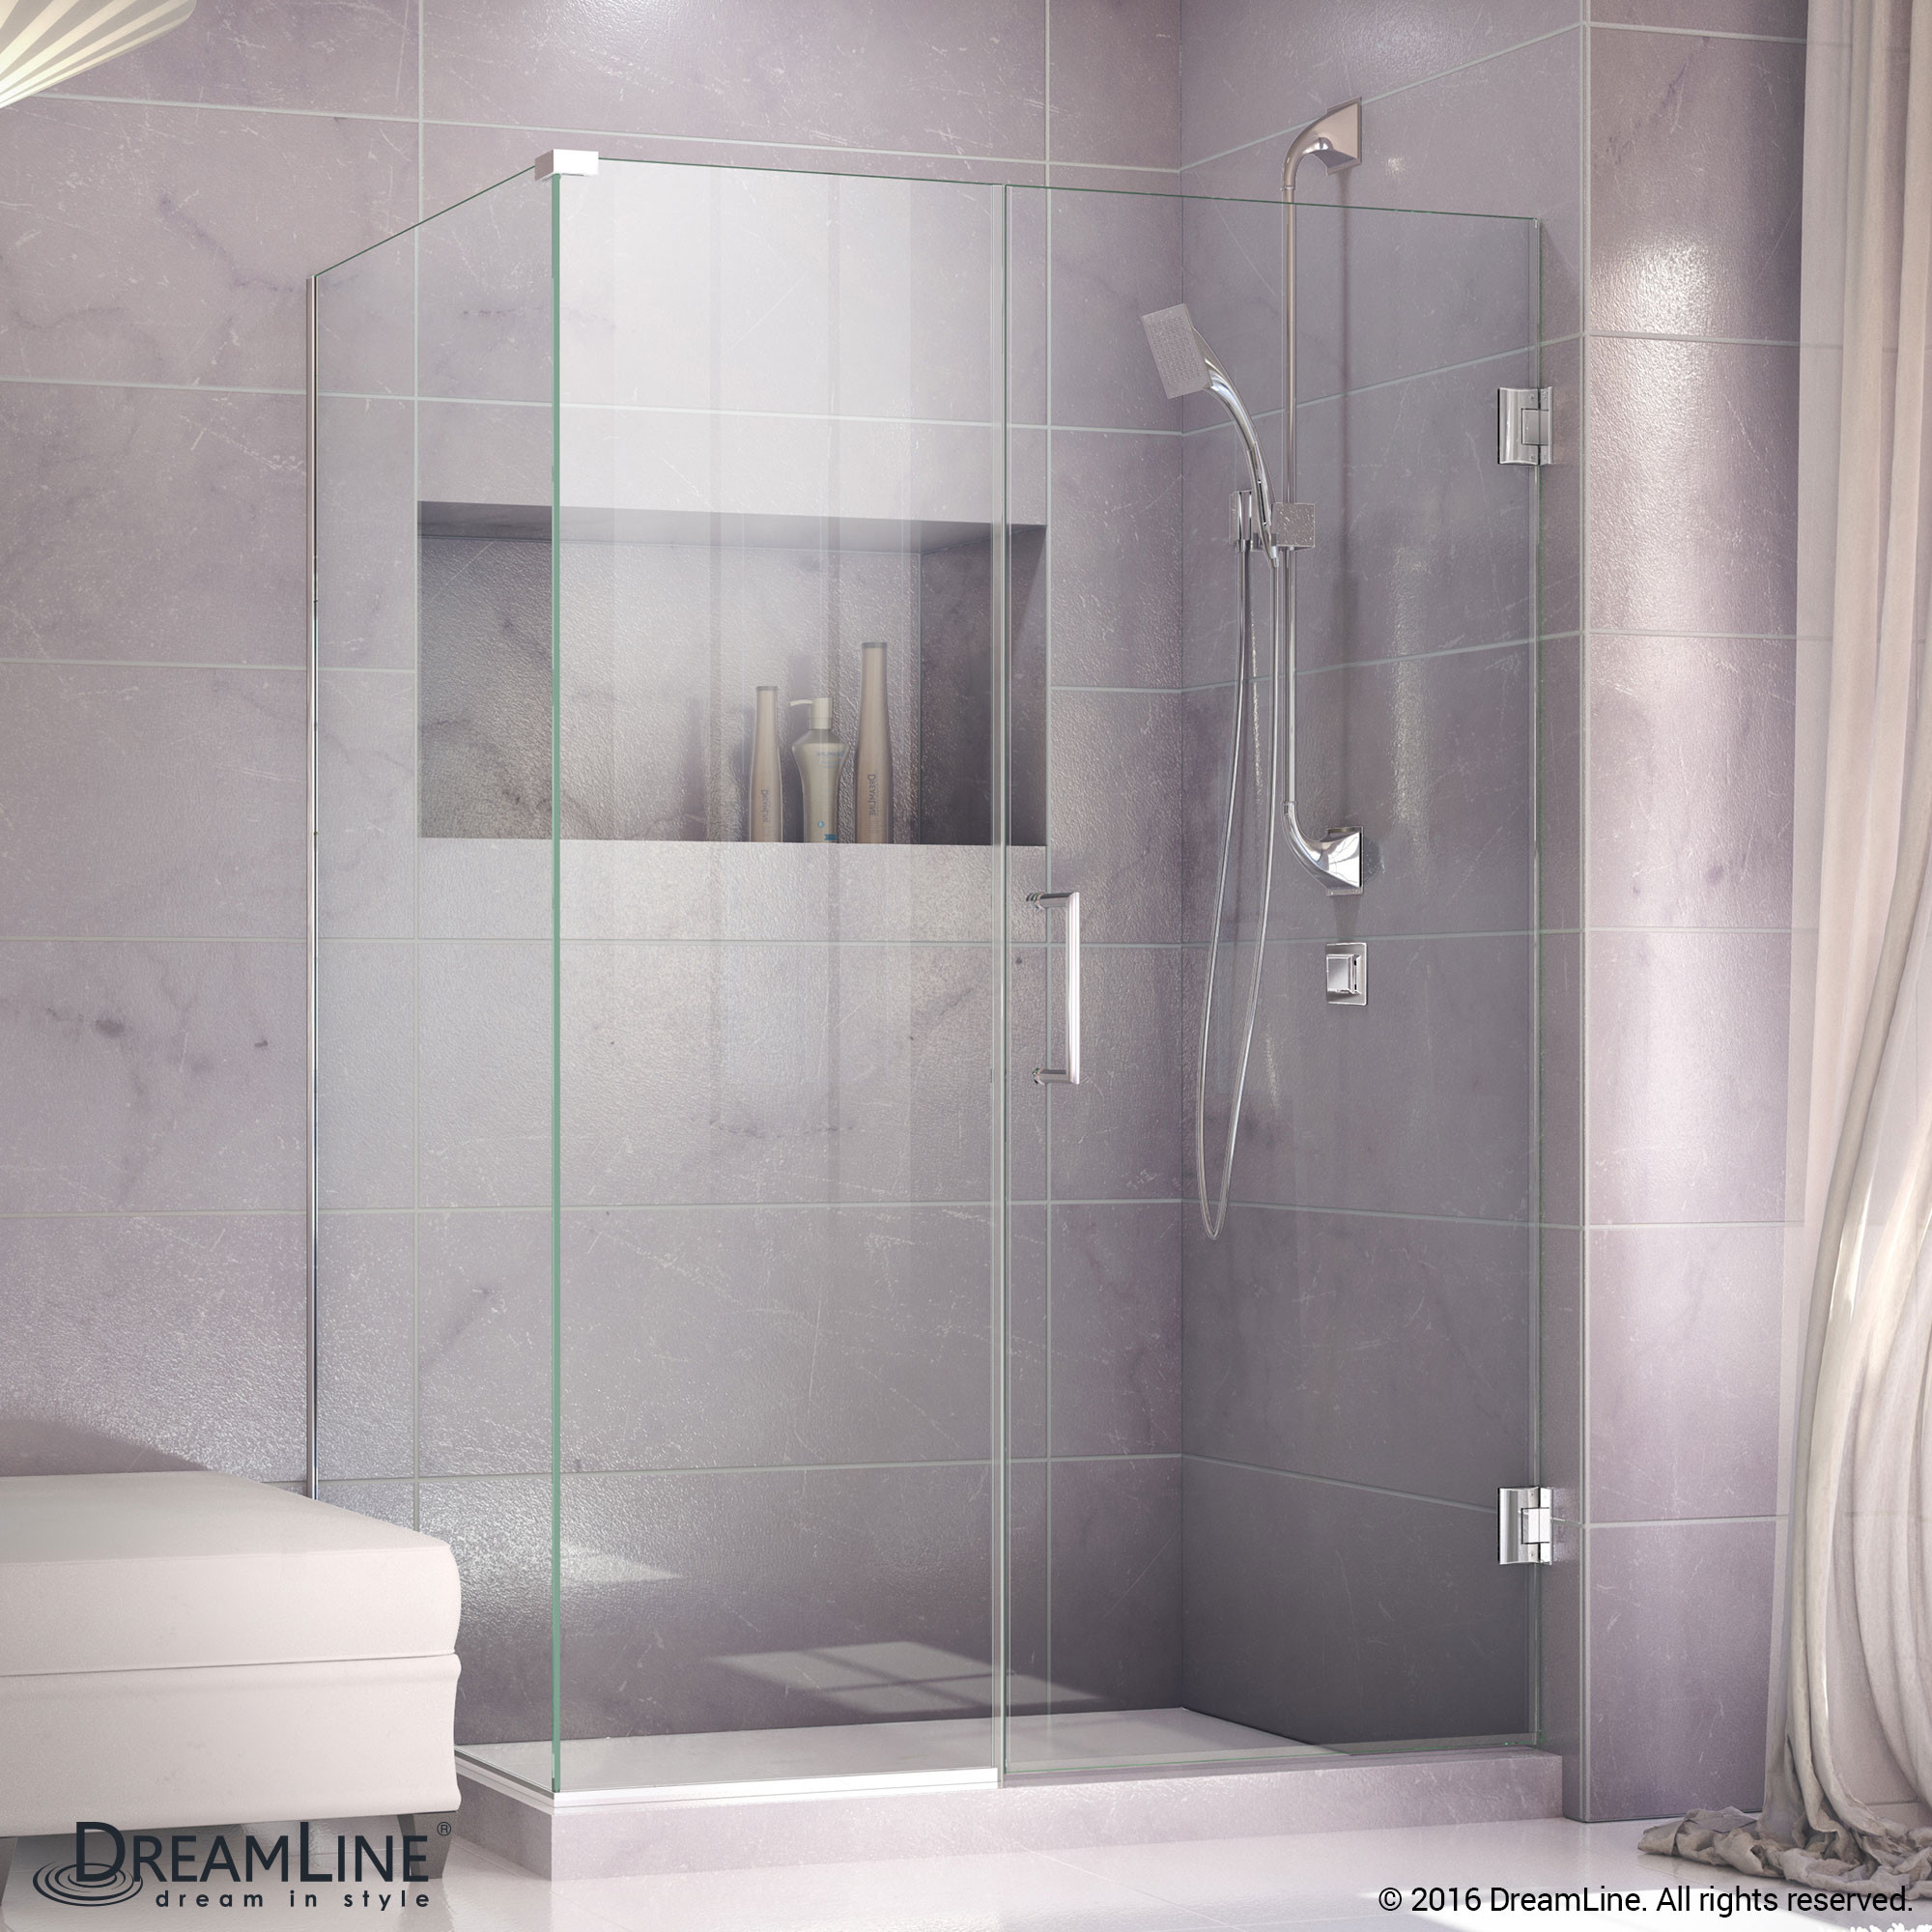 DreamLine SHEN-24415340-01 Unidoor Plus Hinged Shower Enclosure In Chrome Finish Hardware